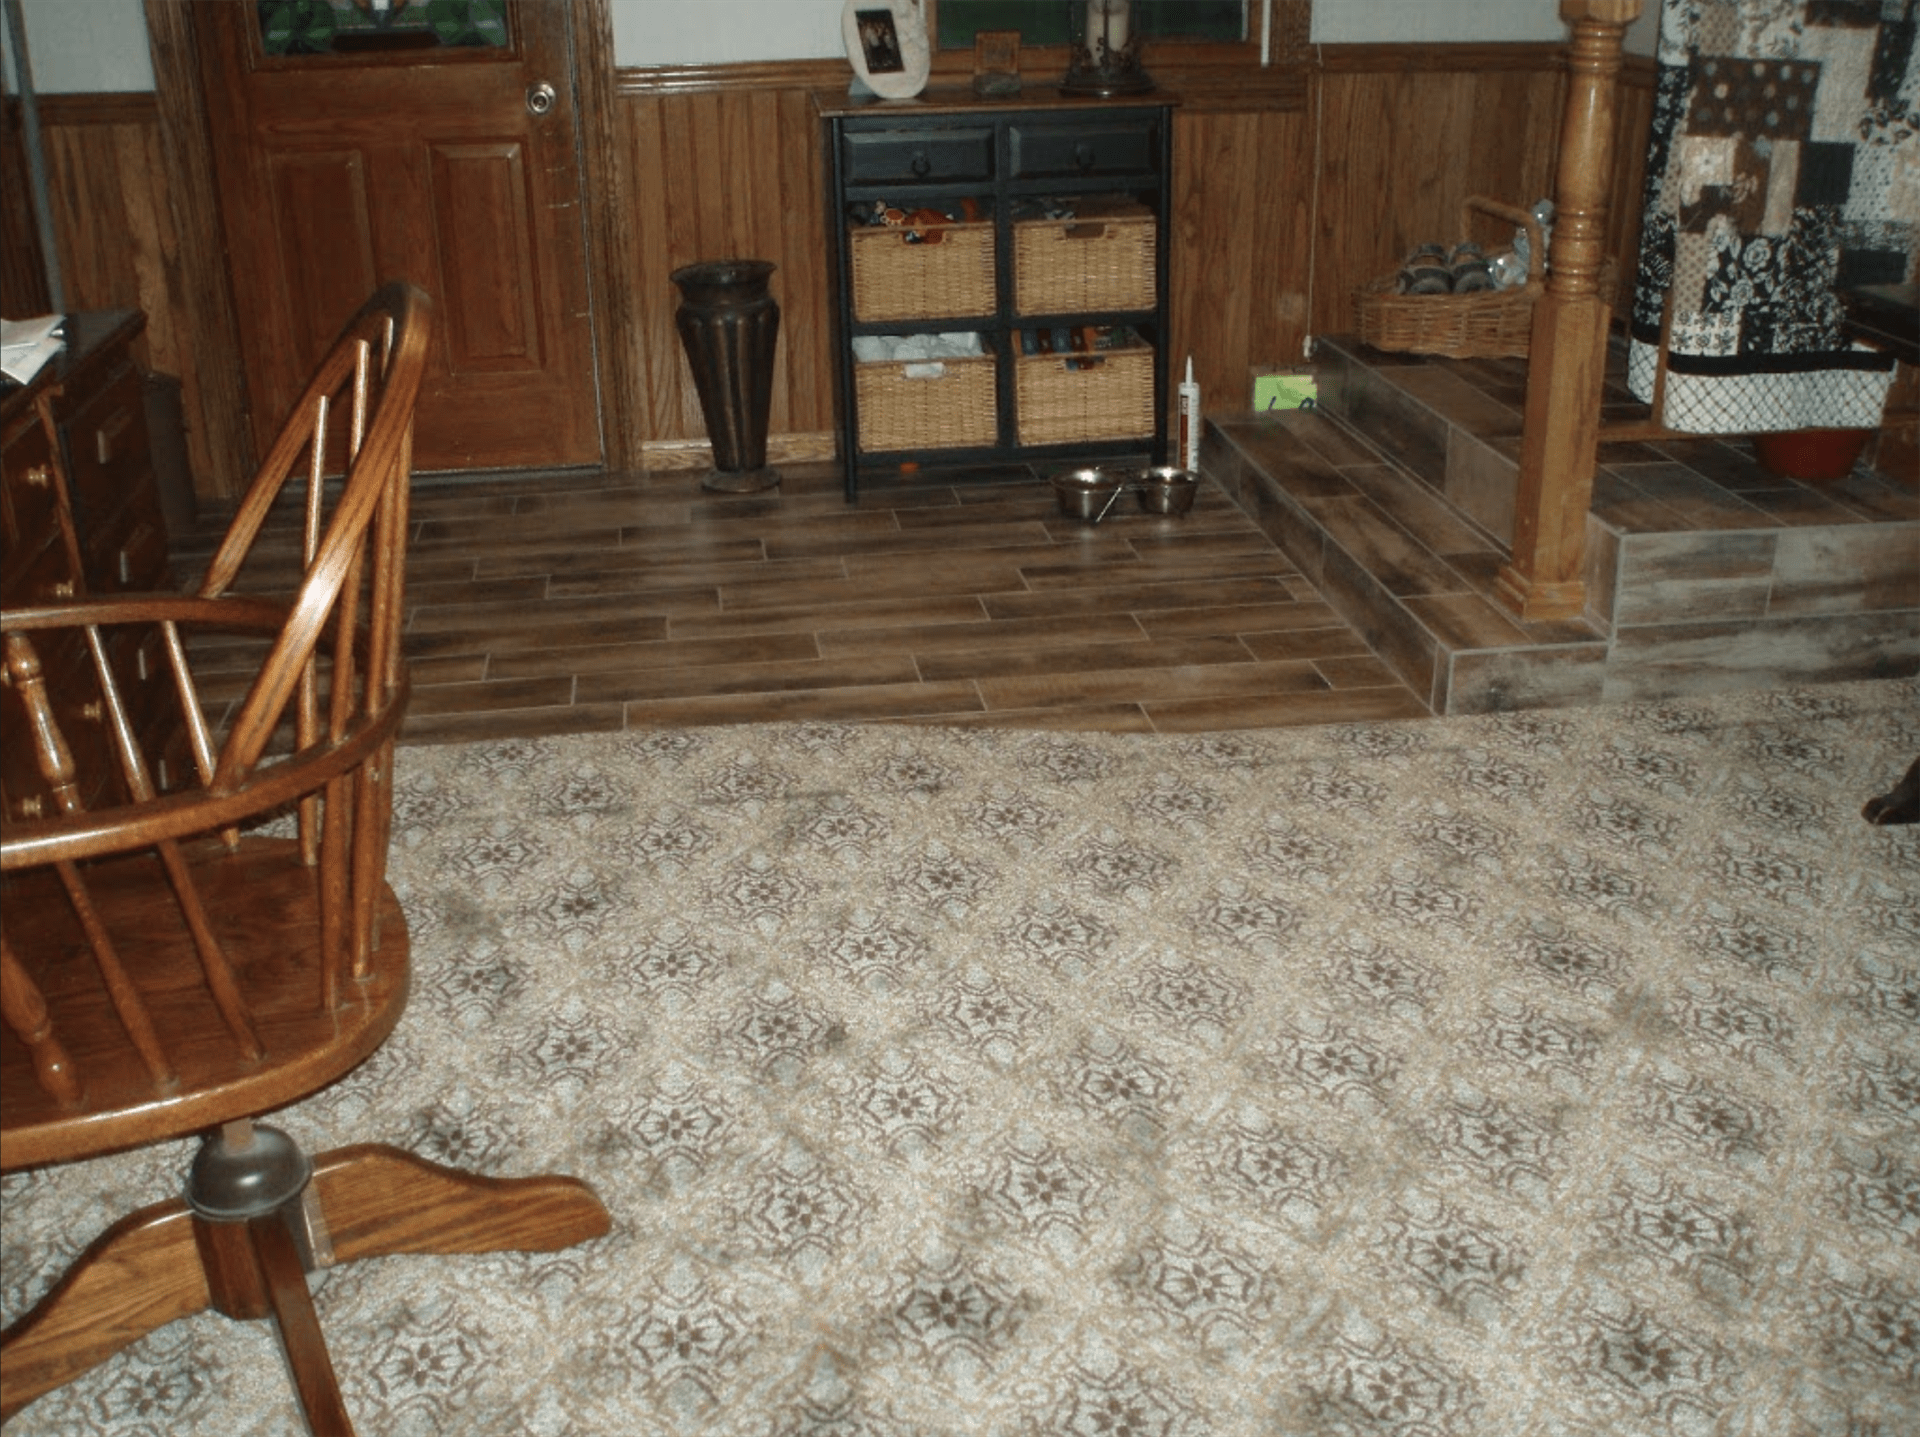 Some of the great work from Yancey's House of Carpets in Saint John, IN